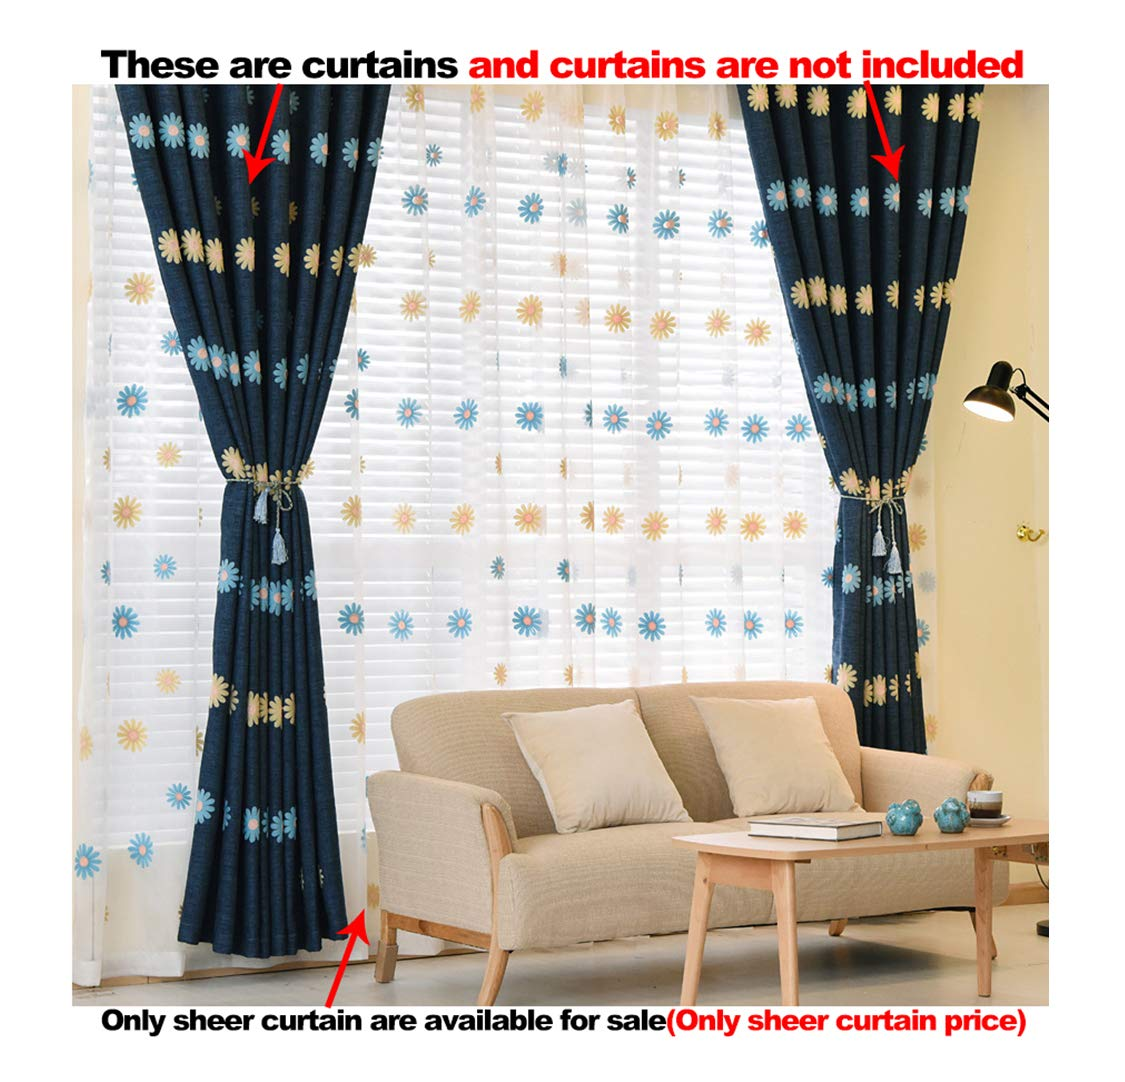 ASide BSide Leisure Style Rod Pocket Top Sunflowers Embroidered Sheer Curtains Transparent Window Decoration For Sitting Room Child Room and Houseroom (1 Panel, W 52 x L 104 inch, White)